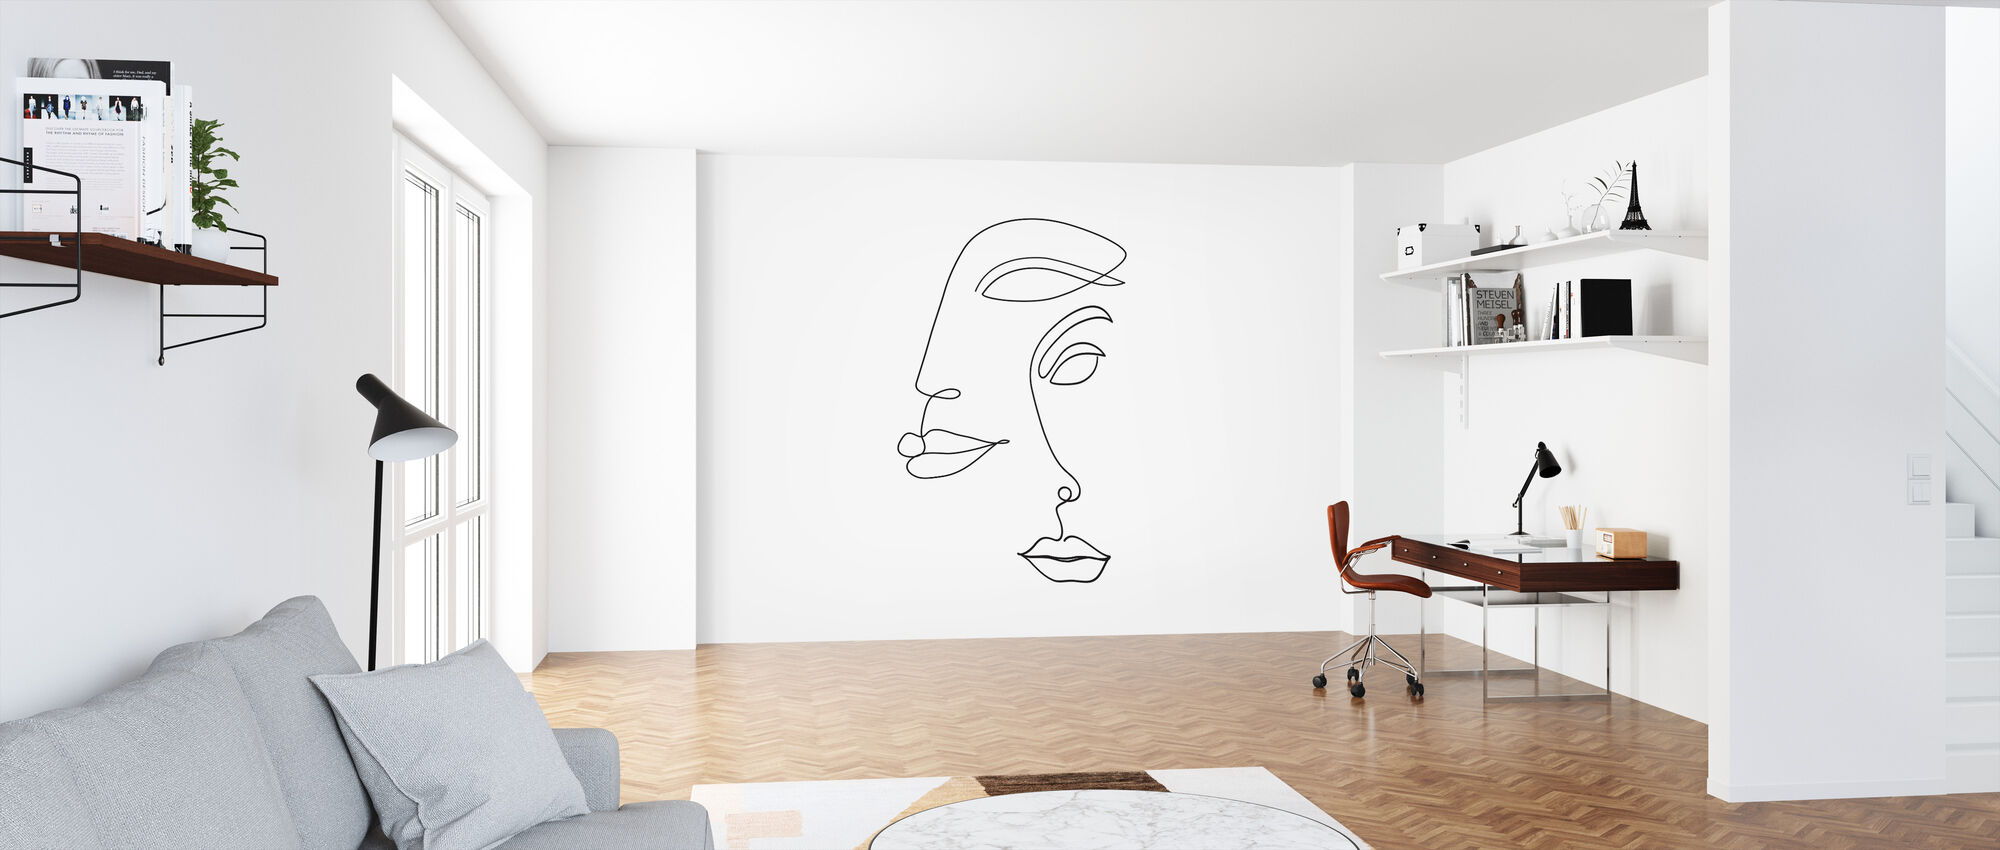 Two Faced - Wallpaper - Office